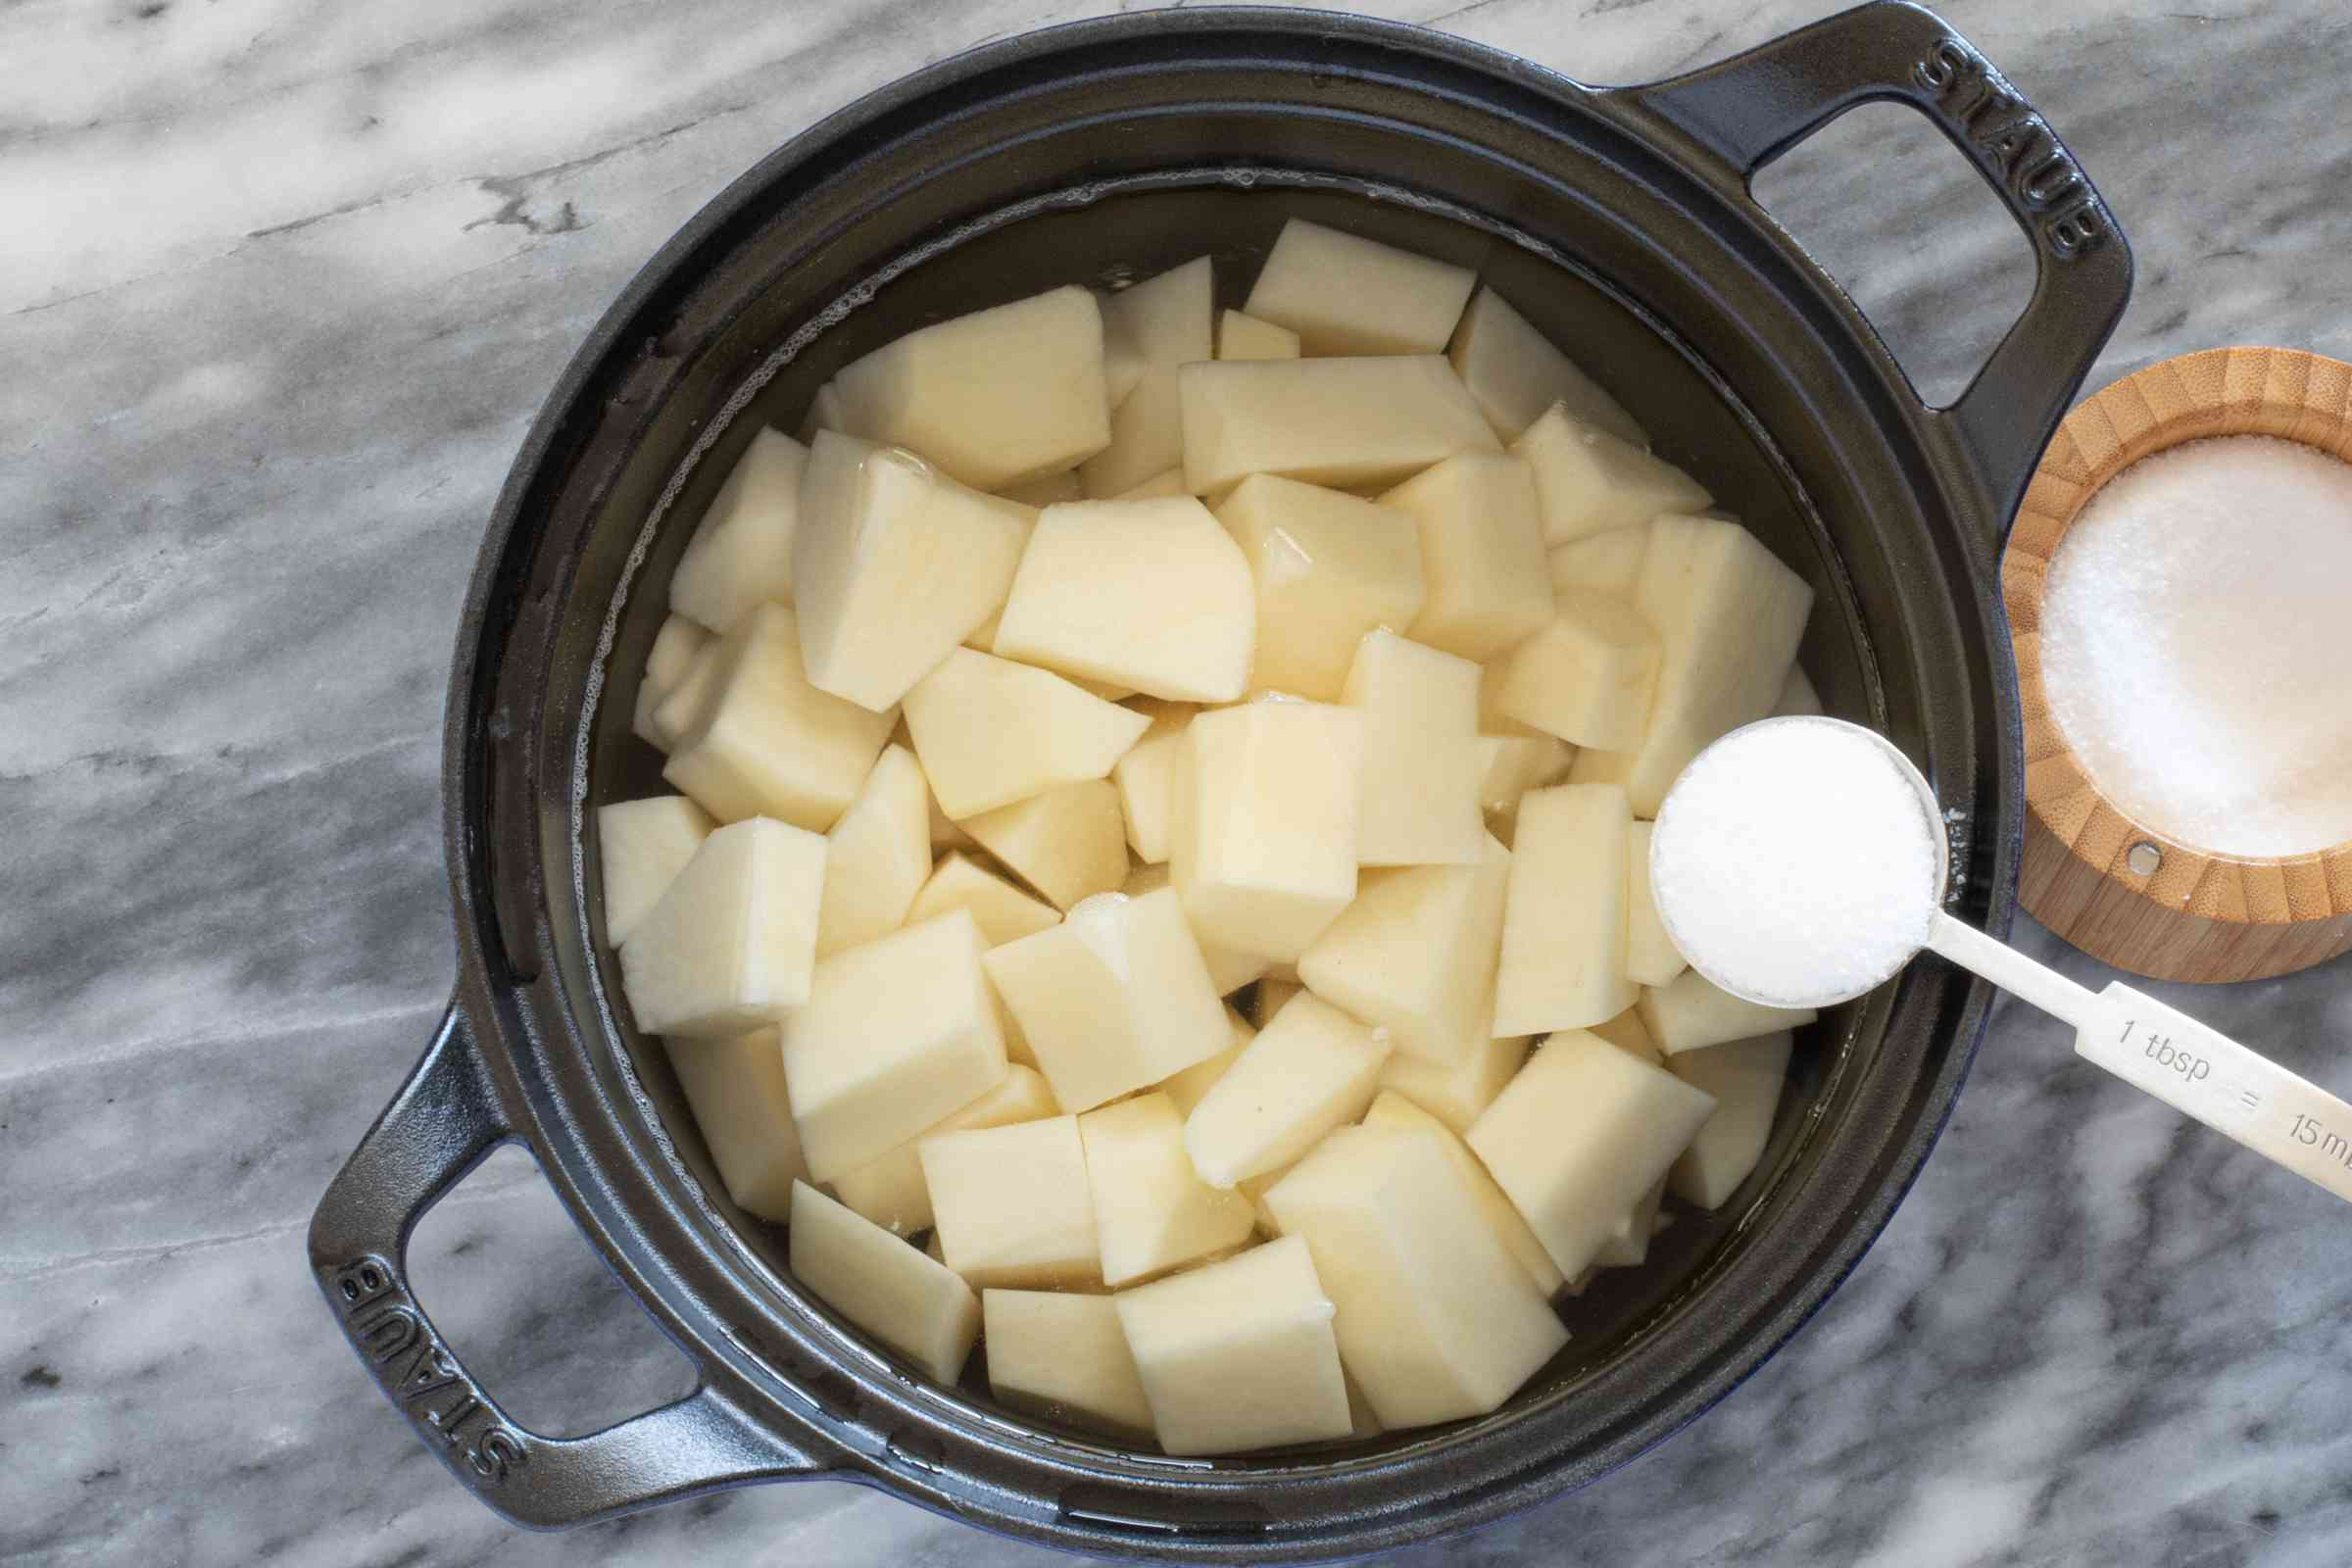 Add salt to the potatoes and water.